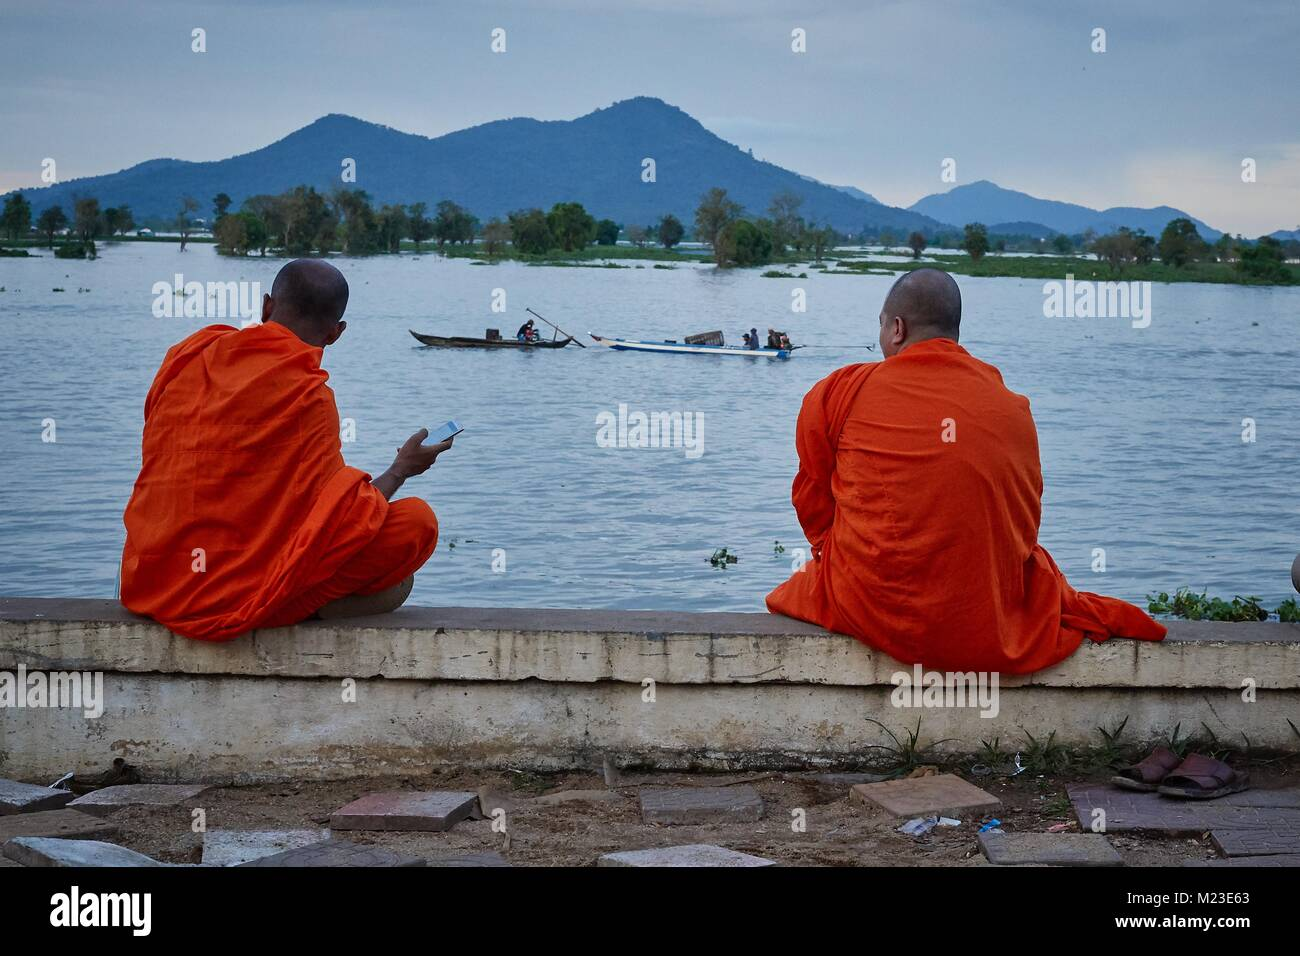 Cambodian monk looking at the lake Tonlé Sap, Kompong Chhnang, Cambodia - Stock Image